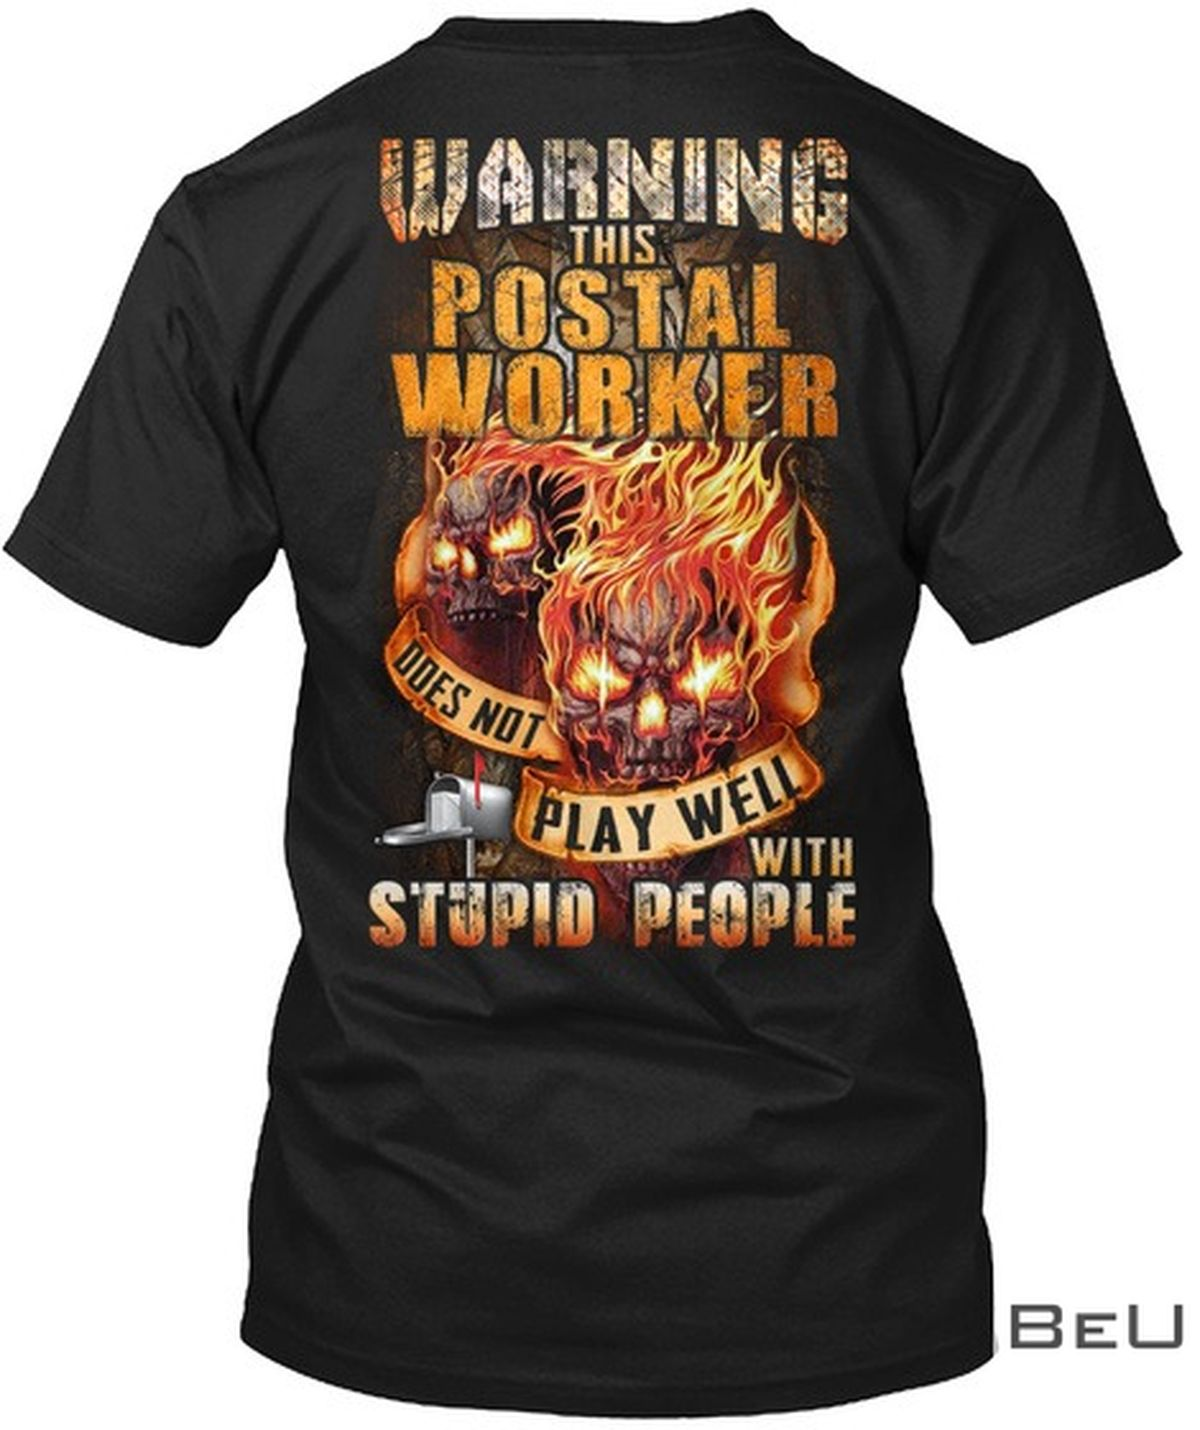 Warning this postal worker does not play well with stupid people shirt